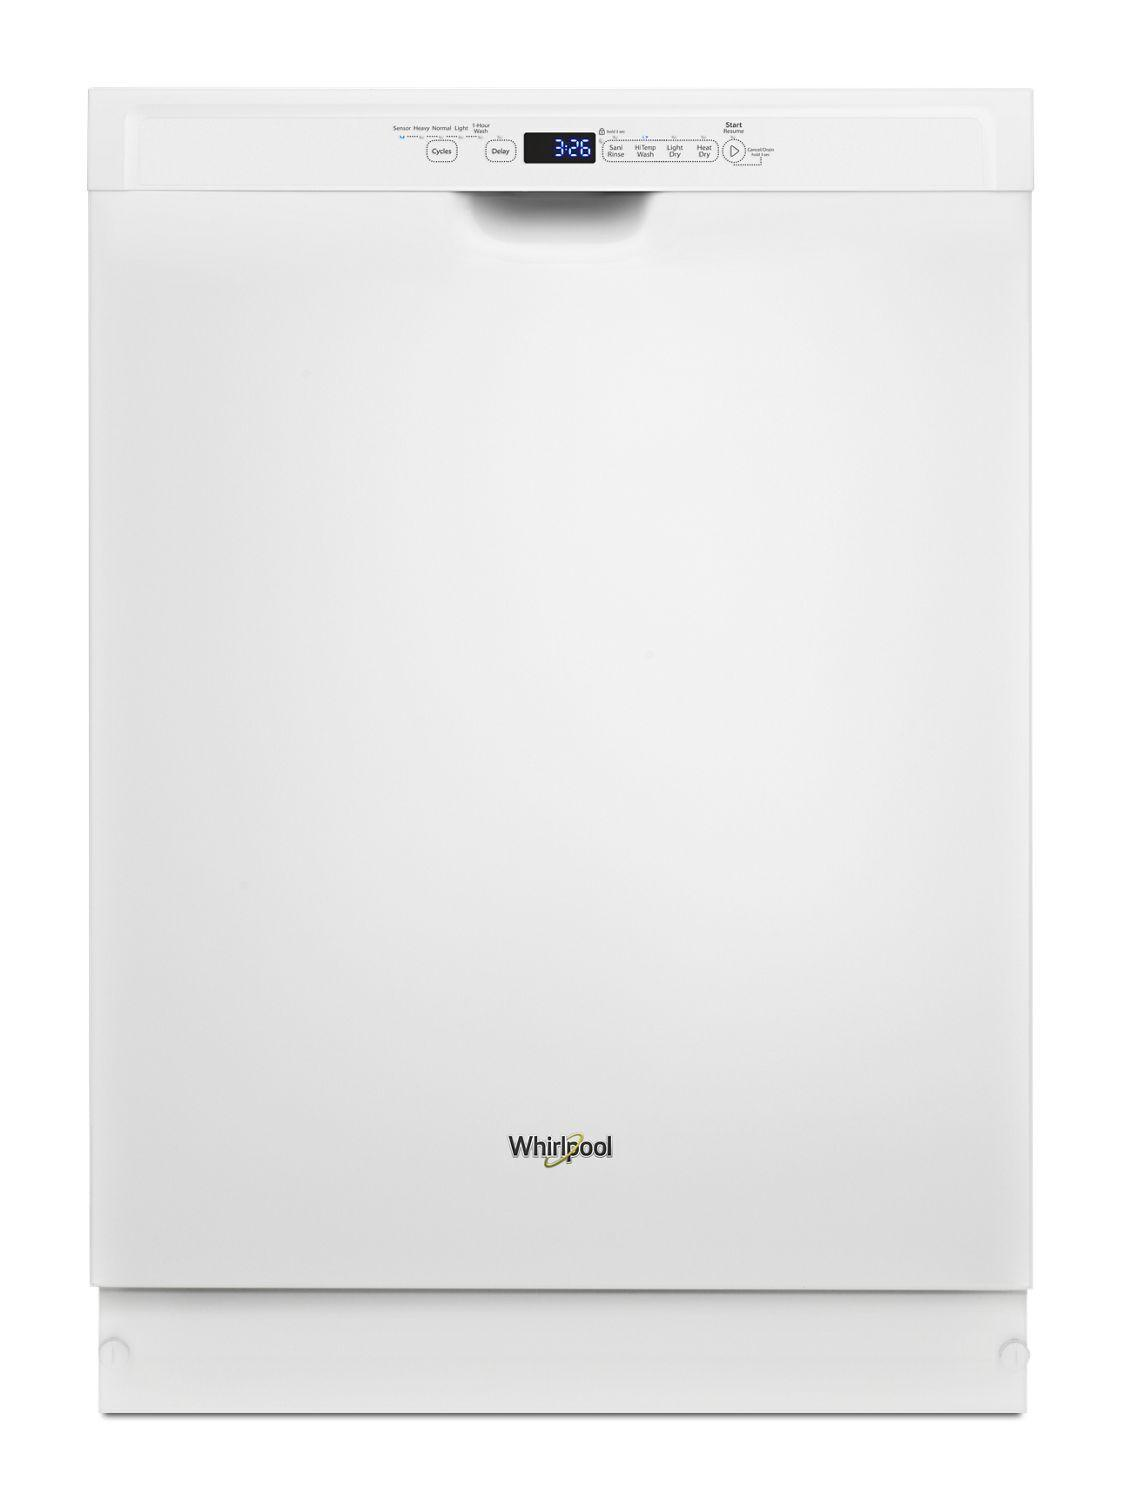 WhirlpoolStainless Steel Dishwasher With 1-Hour Wash Cycle White